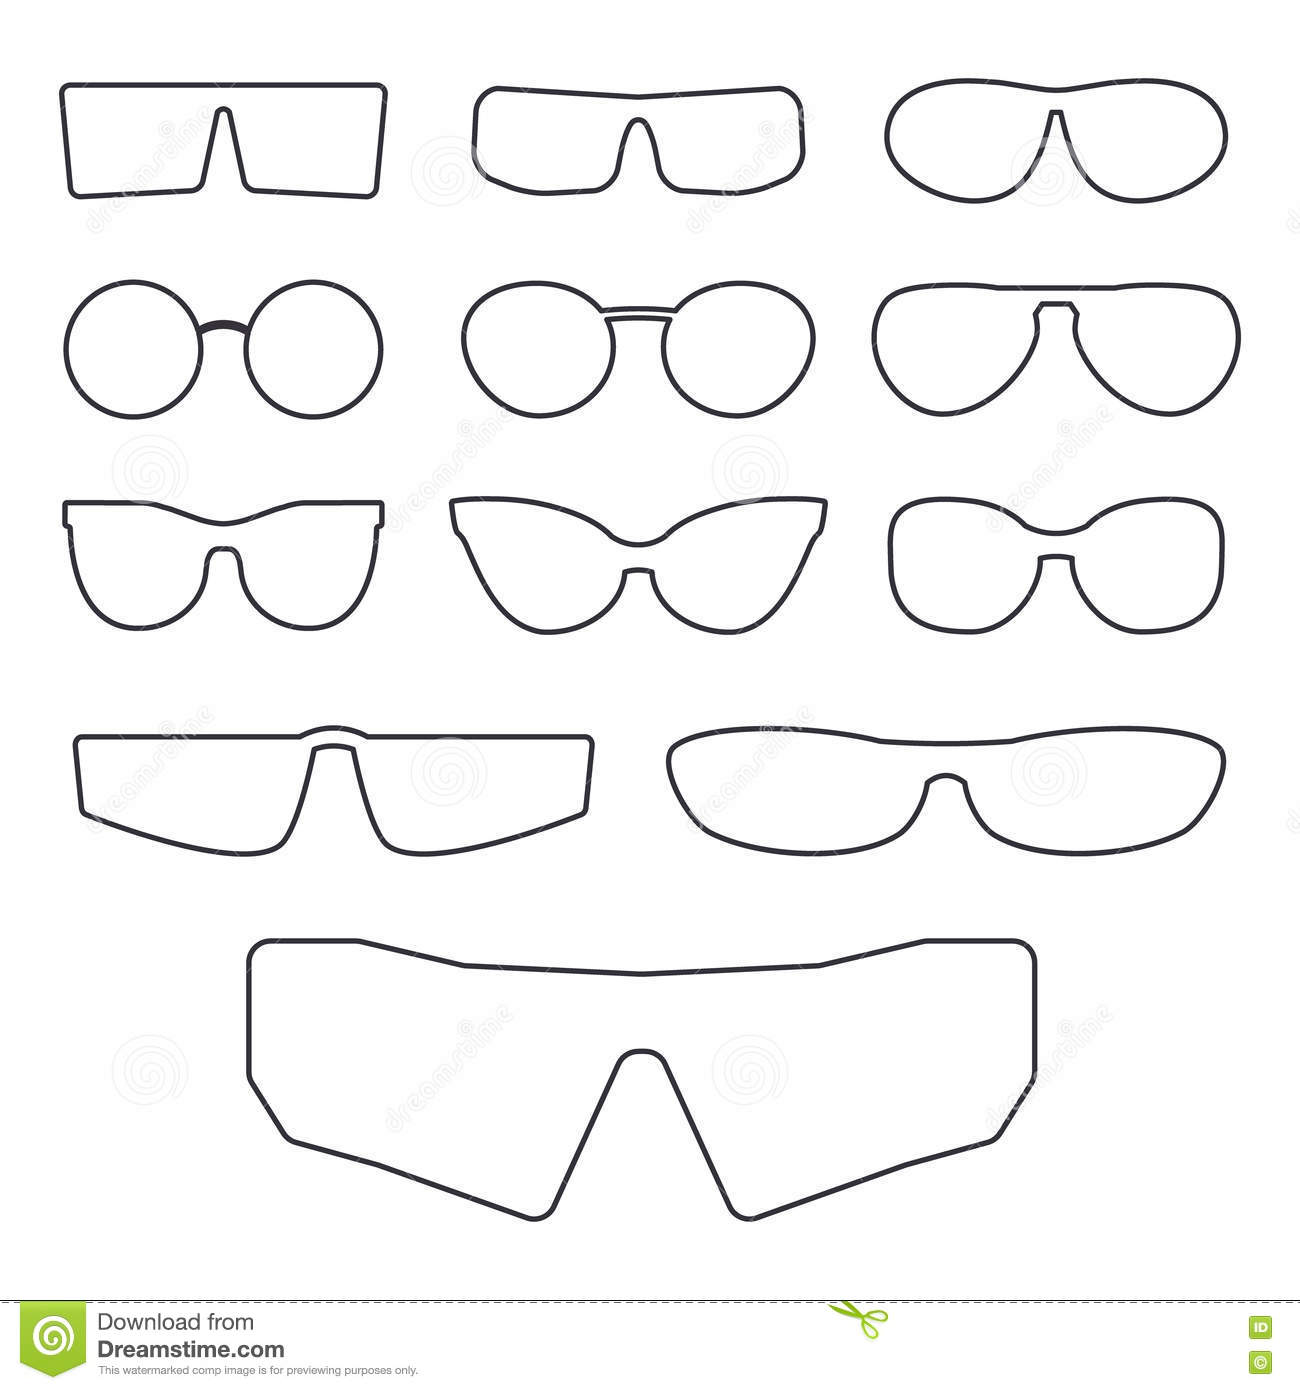 35026f5cc3 Spectacle frame on white background various design frames for sunglasses  and eyeglasses vector illustration jpg 1300x1390